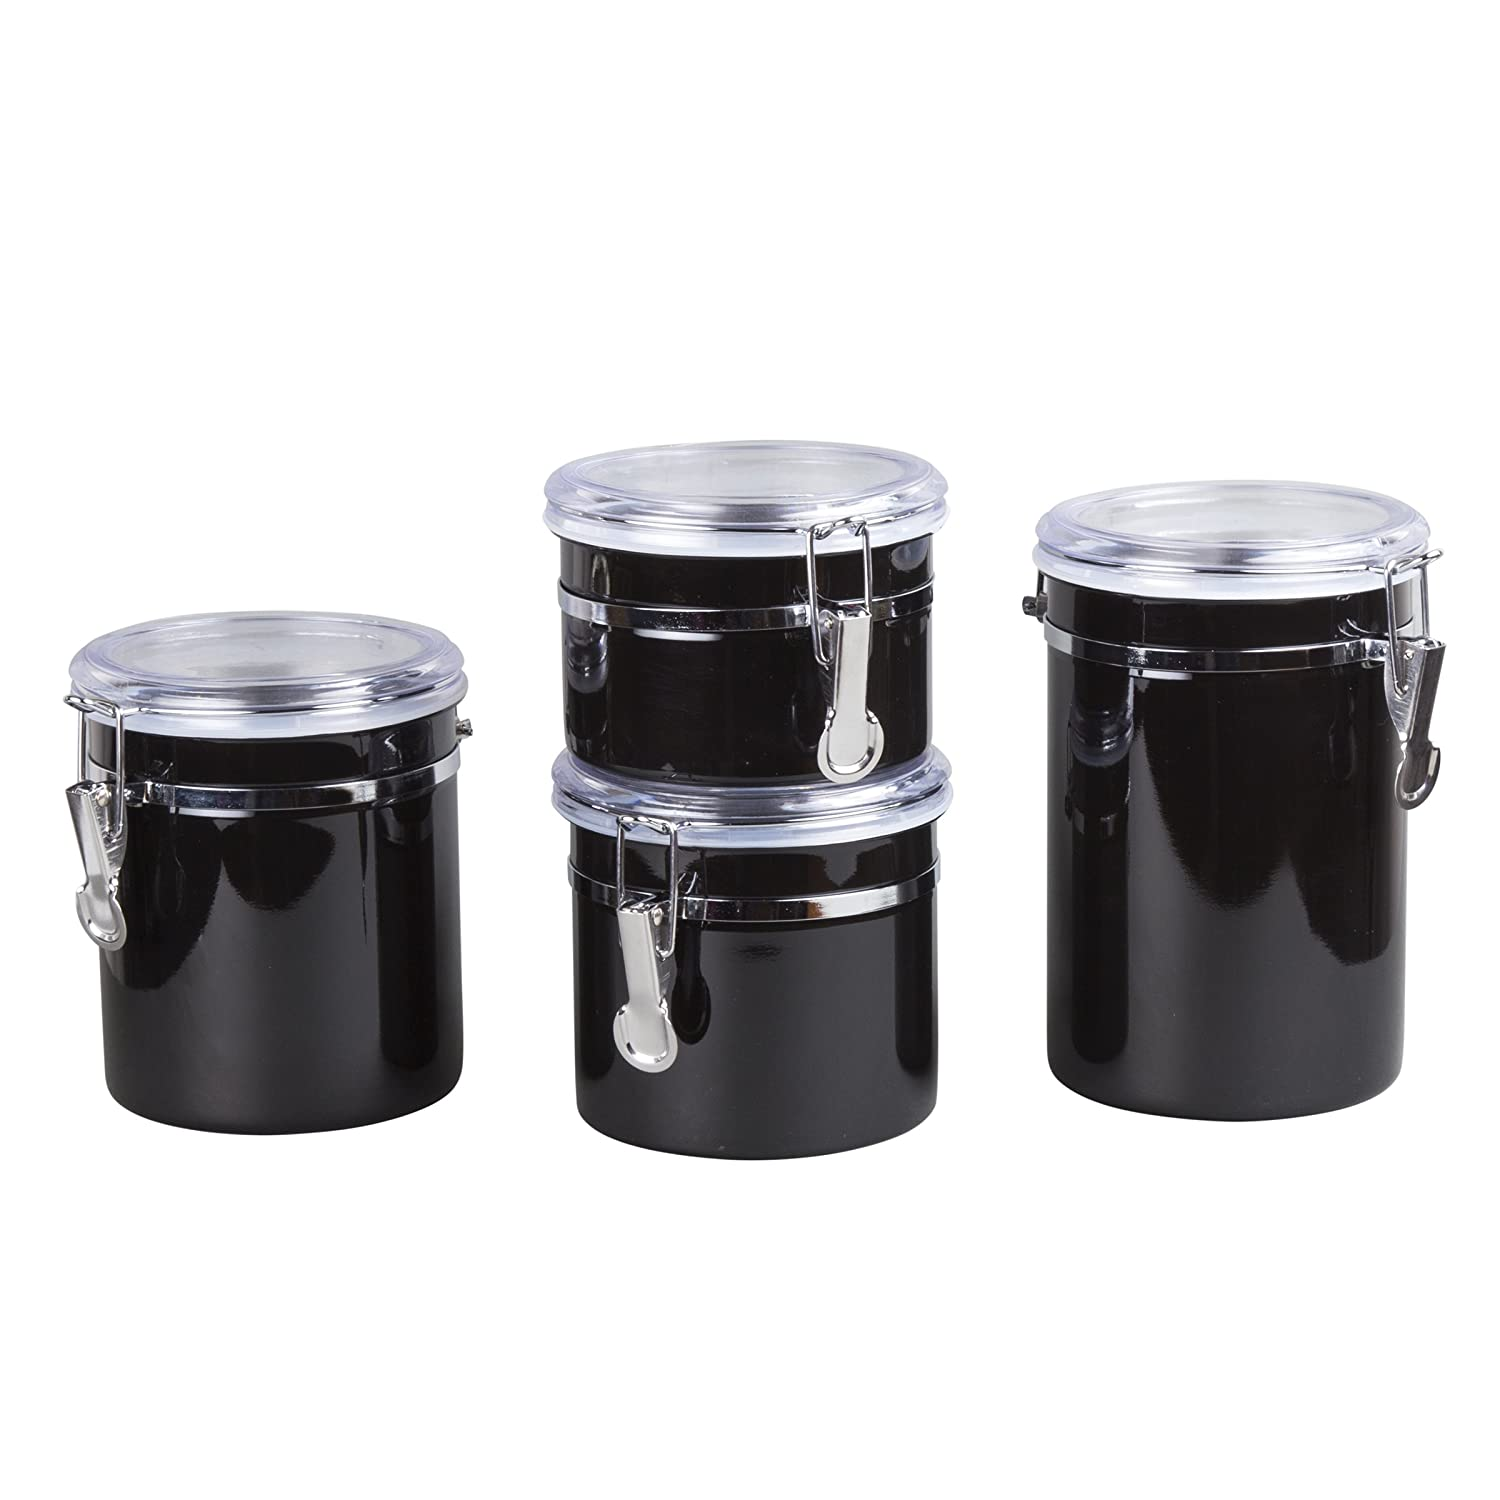 Creative Home 50279 4-Pieces Stainless Steel Canister Container Set with Air Tight Lid and Locking Clamp 26 oz./36 oz./47 oz./And 62 oz. Black